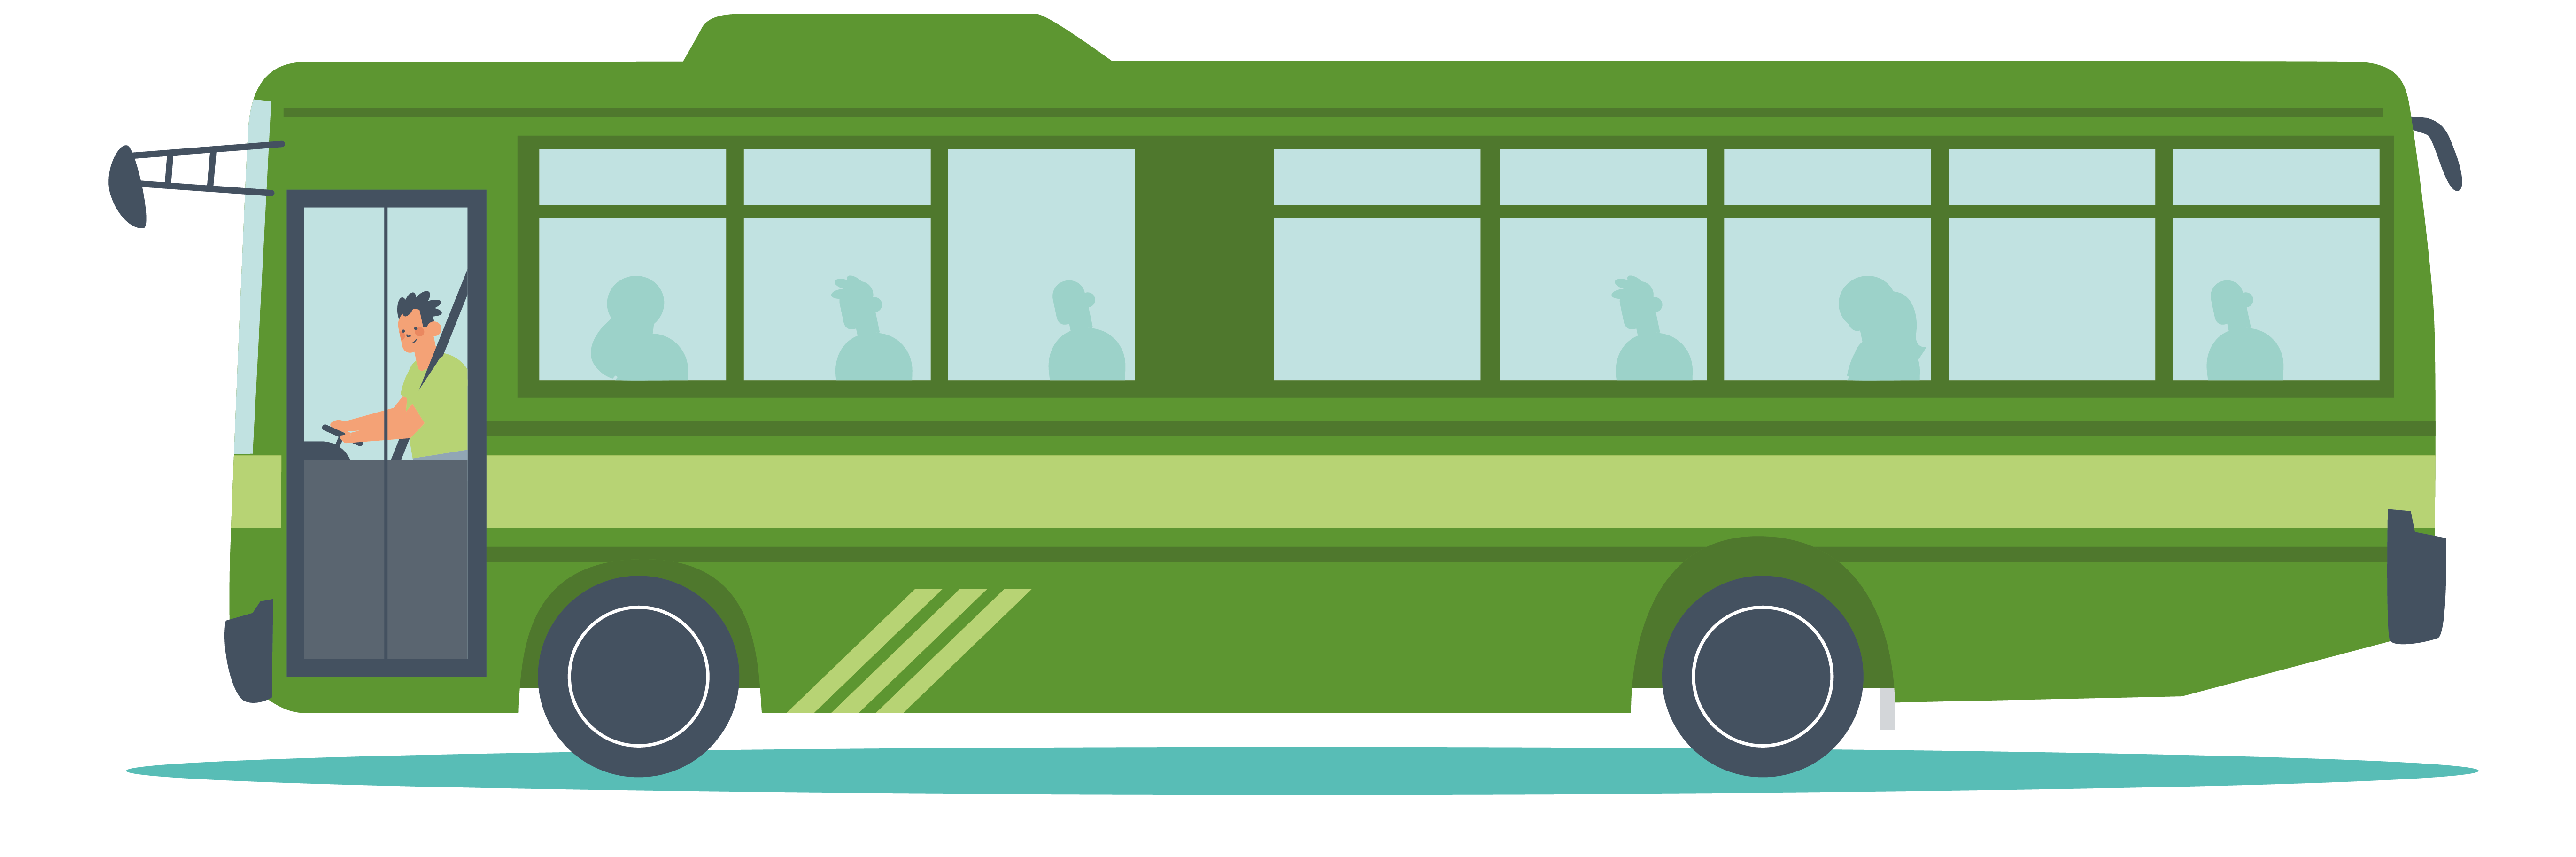 Illustrated graphic of a bus